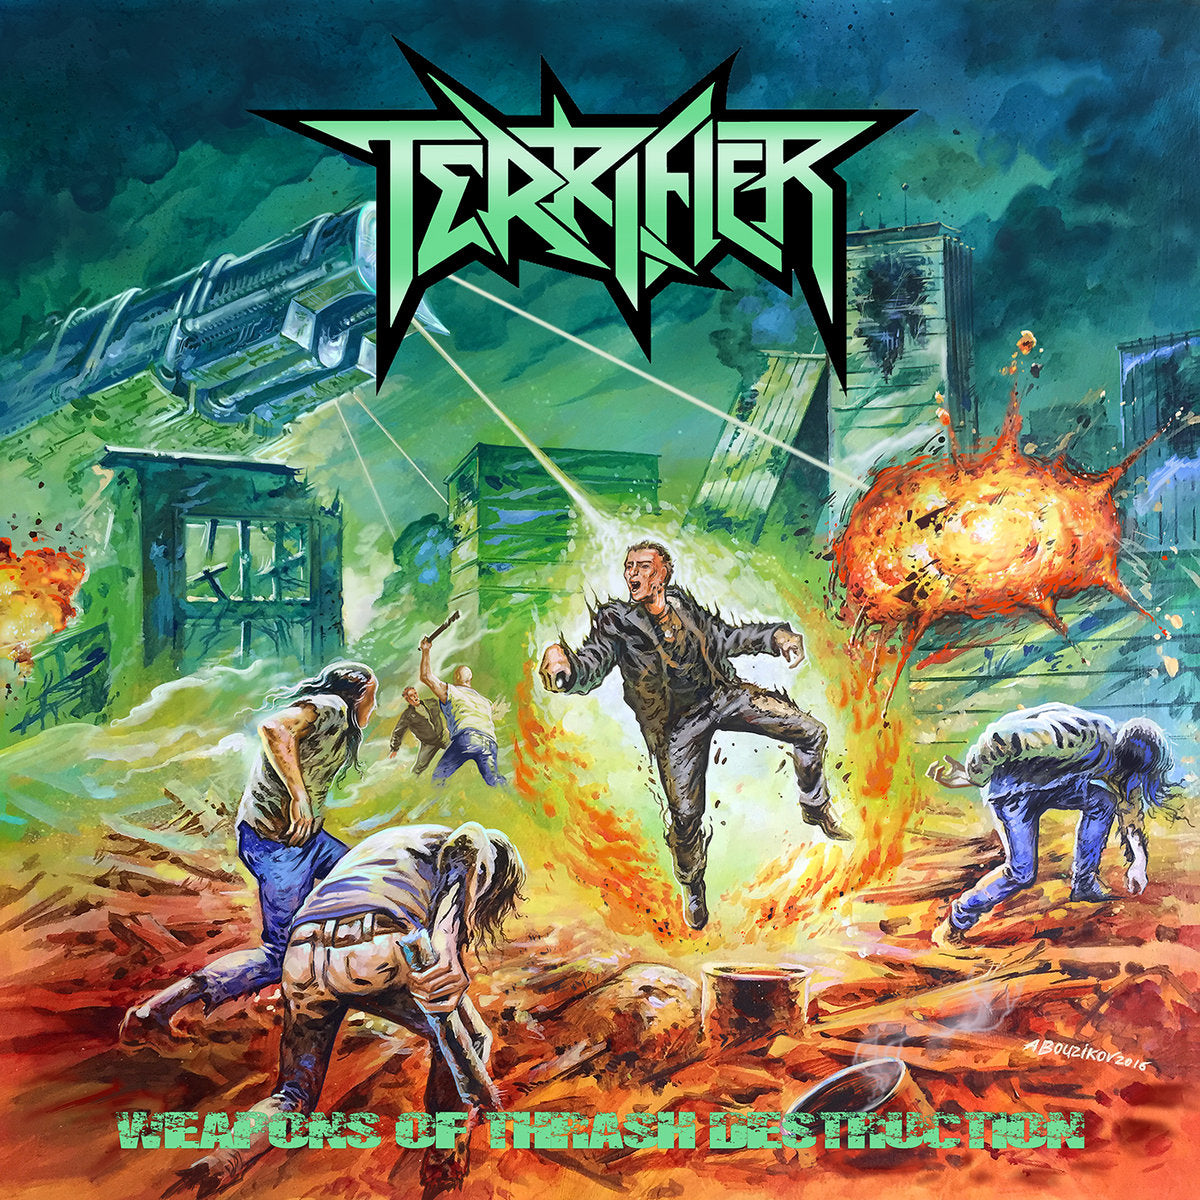 Terrifier - Weapons of Thrash Destruction (2017)